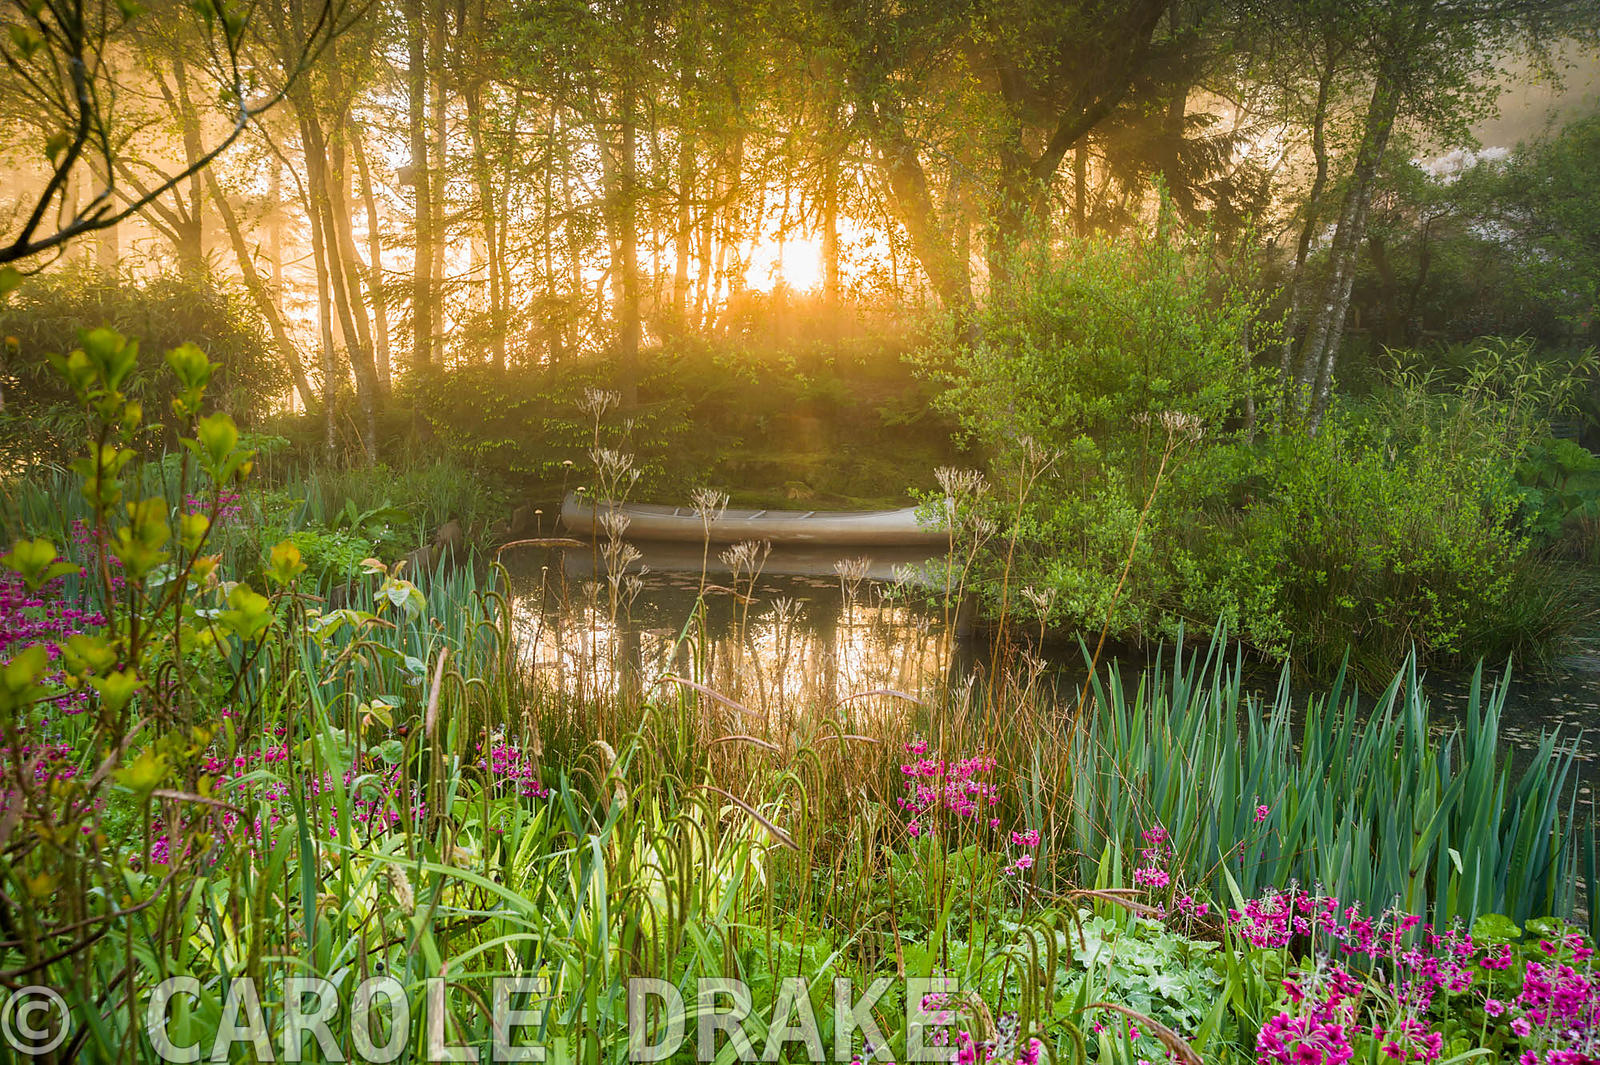 Dawn sunlight breaks through mist and trees above the pond with moored canoe, surrounded by magenta Primula pulverulenta, fer...